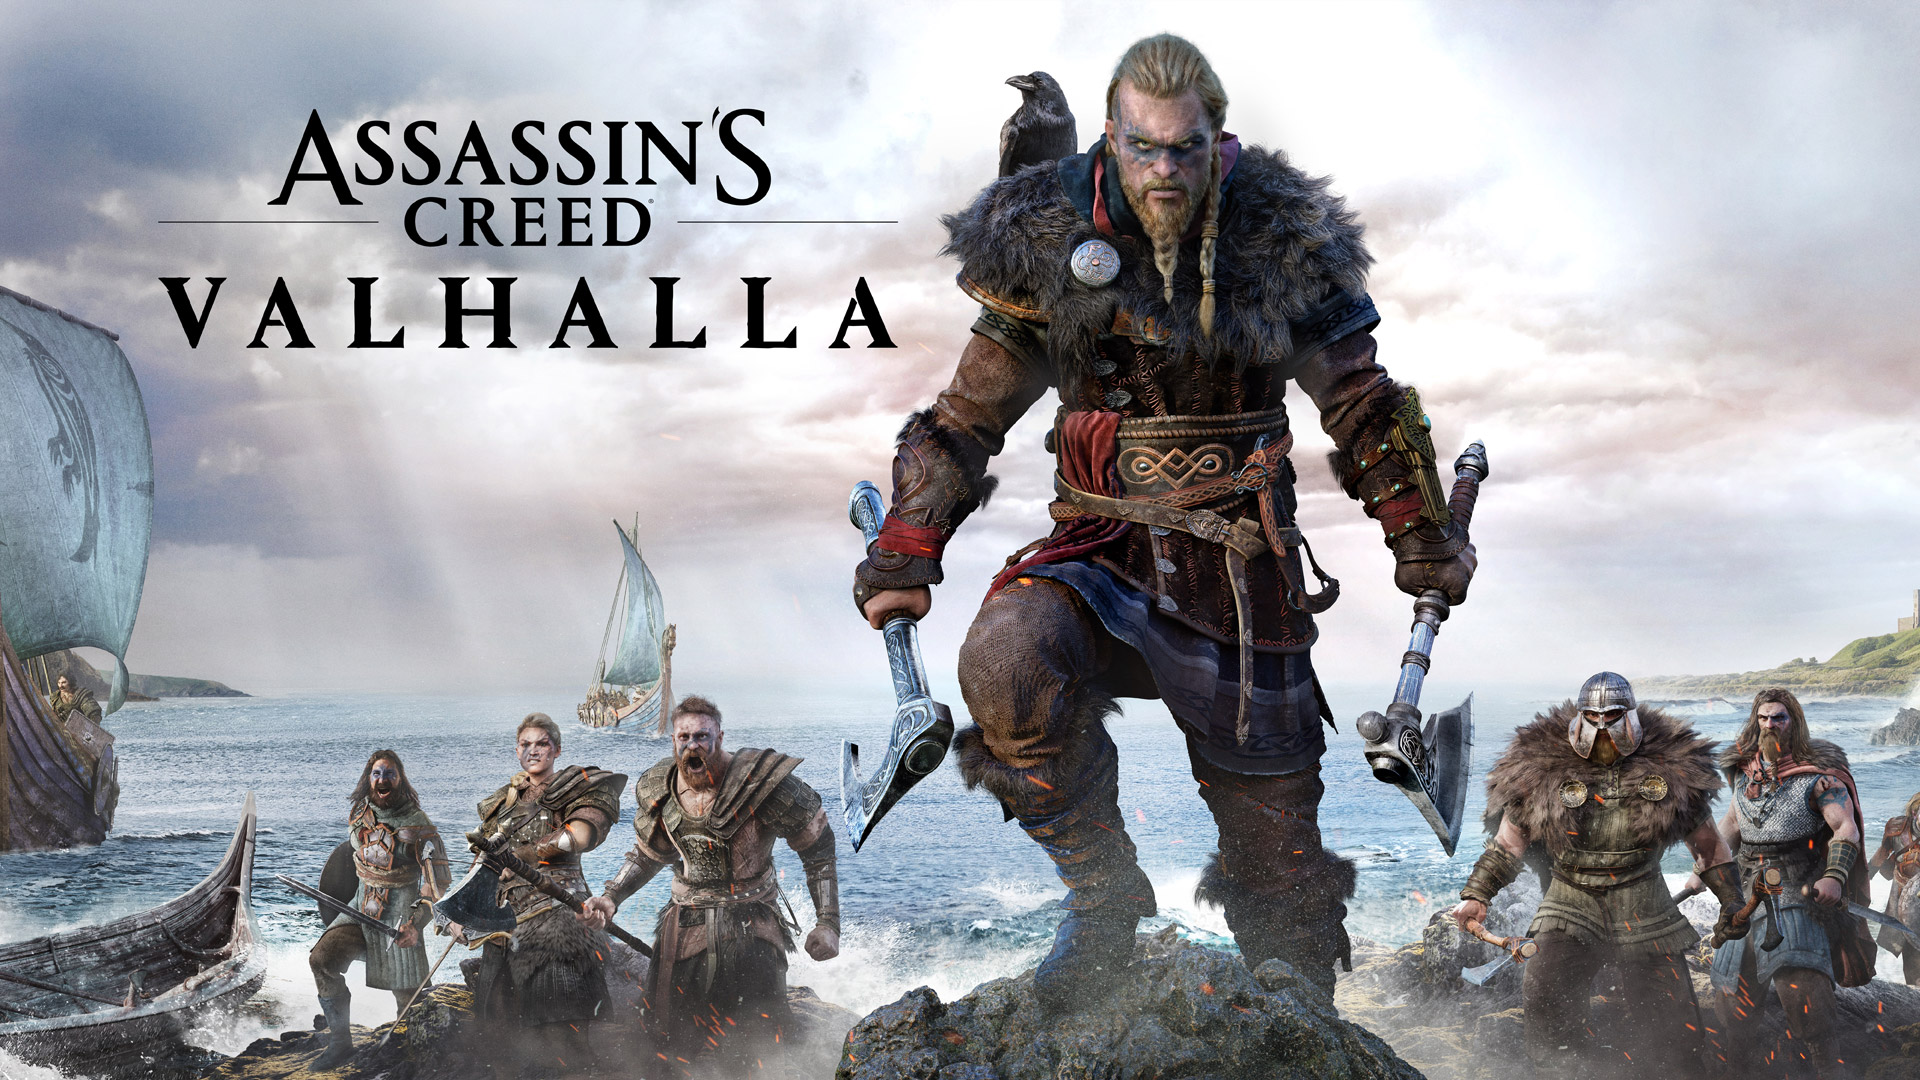 Free Assassin's Creed Valhalla Wallpaper in 1920x1080